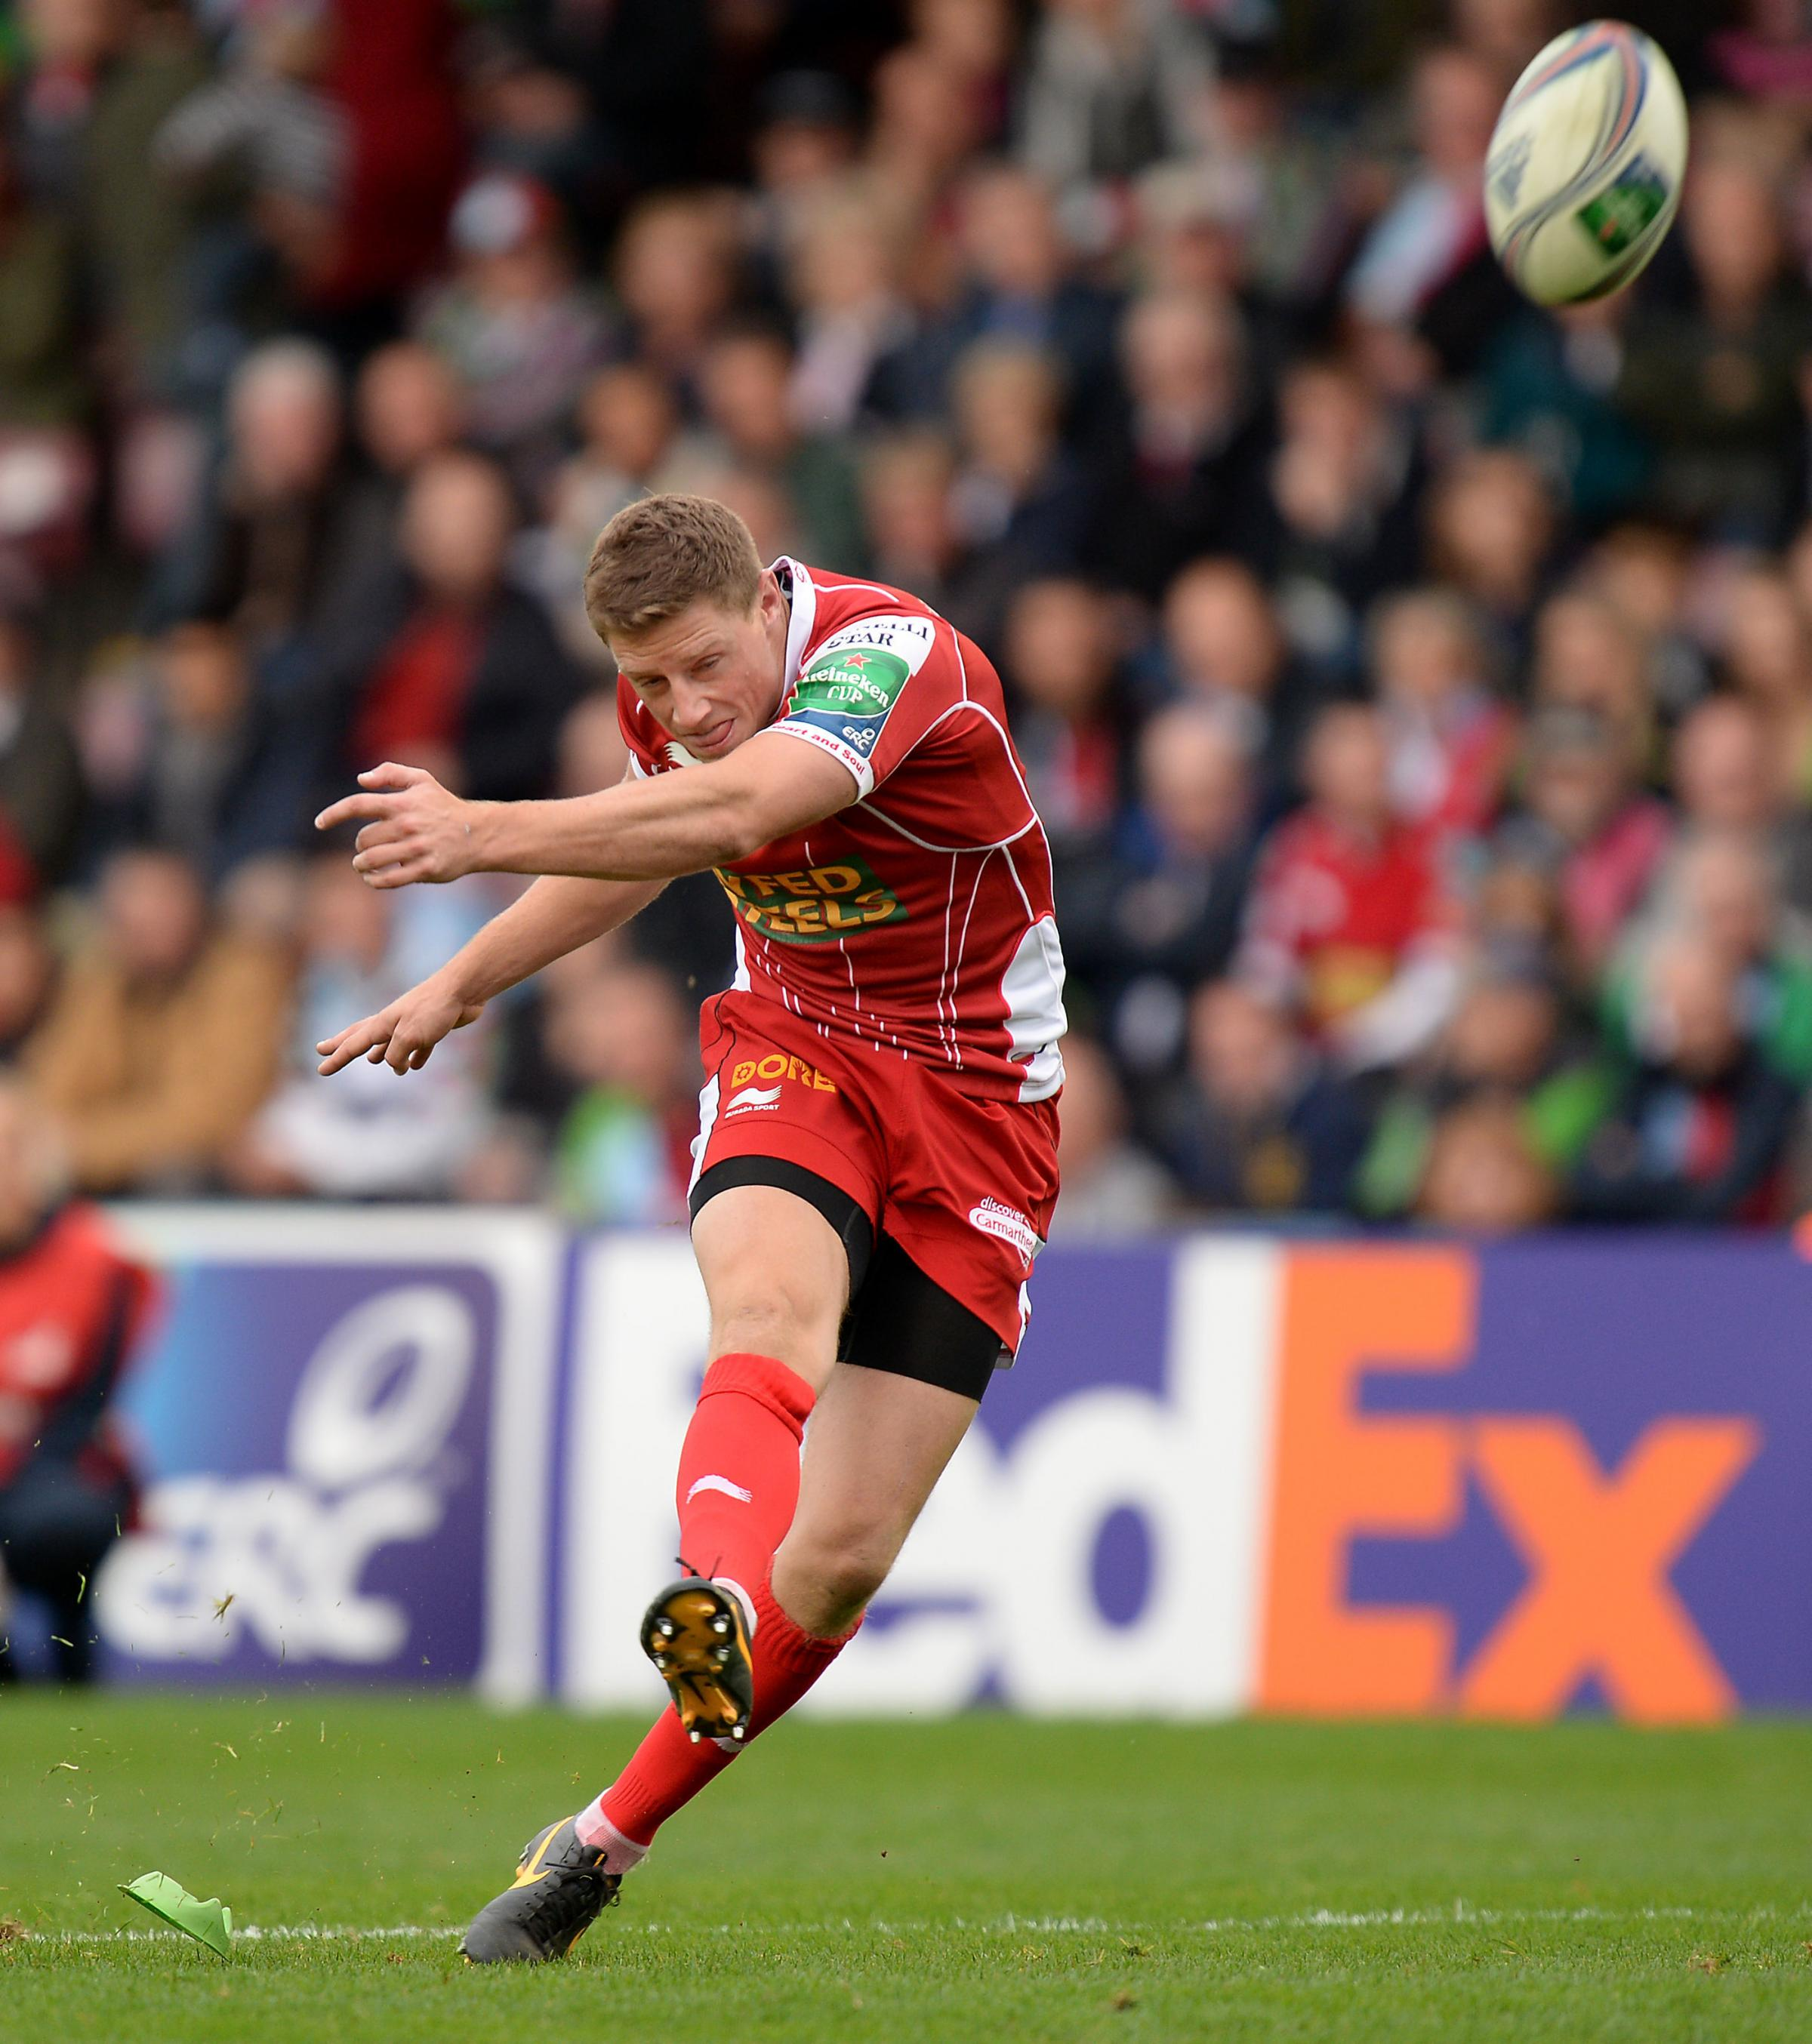 Scarlets' Rhys Priestland kicks a conversion during the Heineken Cup match at Twickenham Stoop, London. PRESS ASSOCIATION Photo. Picture date: Saturday October 12, 2013. See PA story RUGBYU Harlequins. Photo credit should read: Andrew Matthews/PA Wire